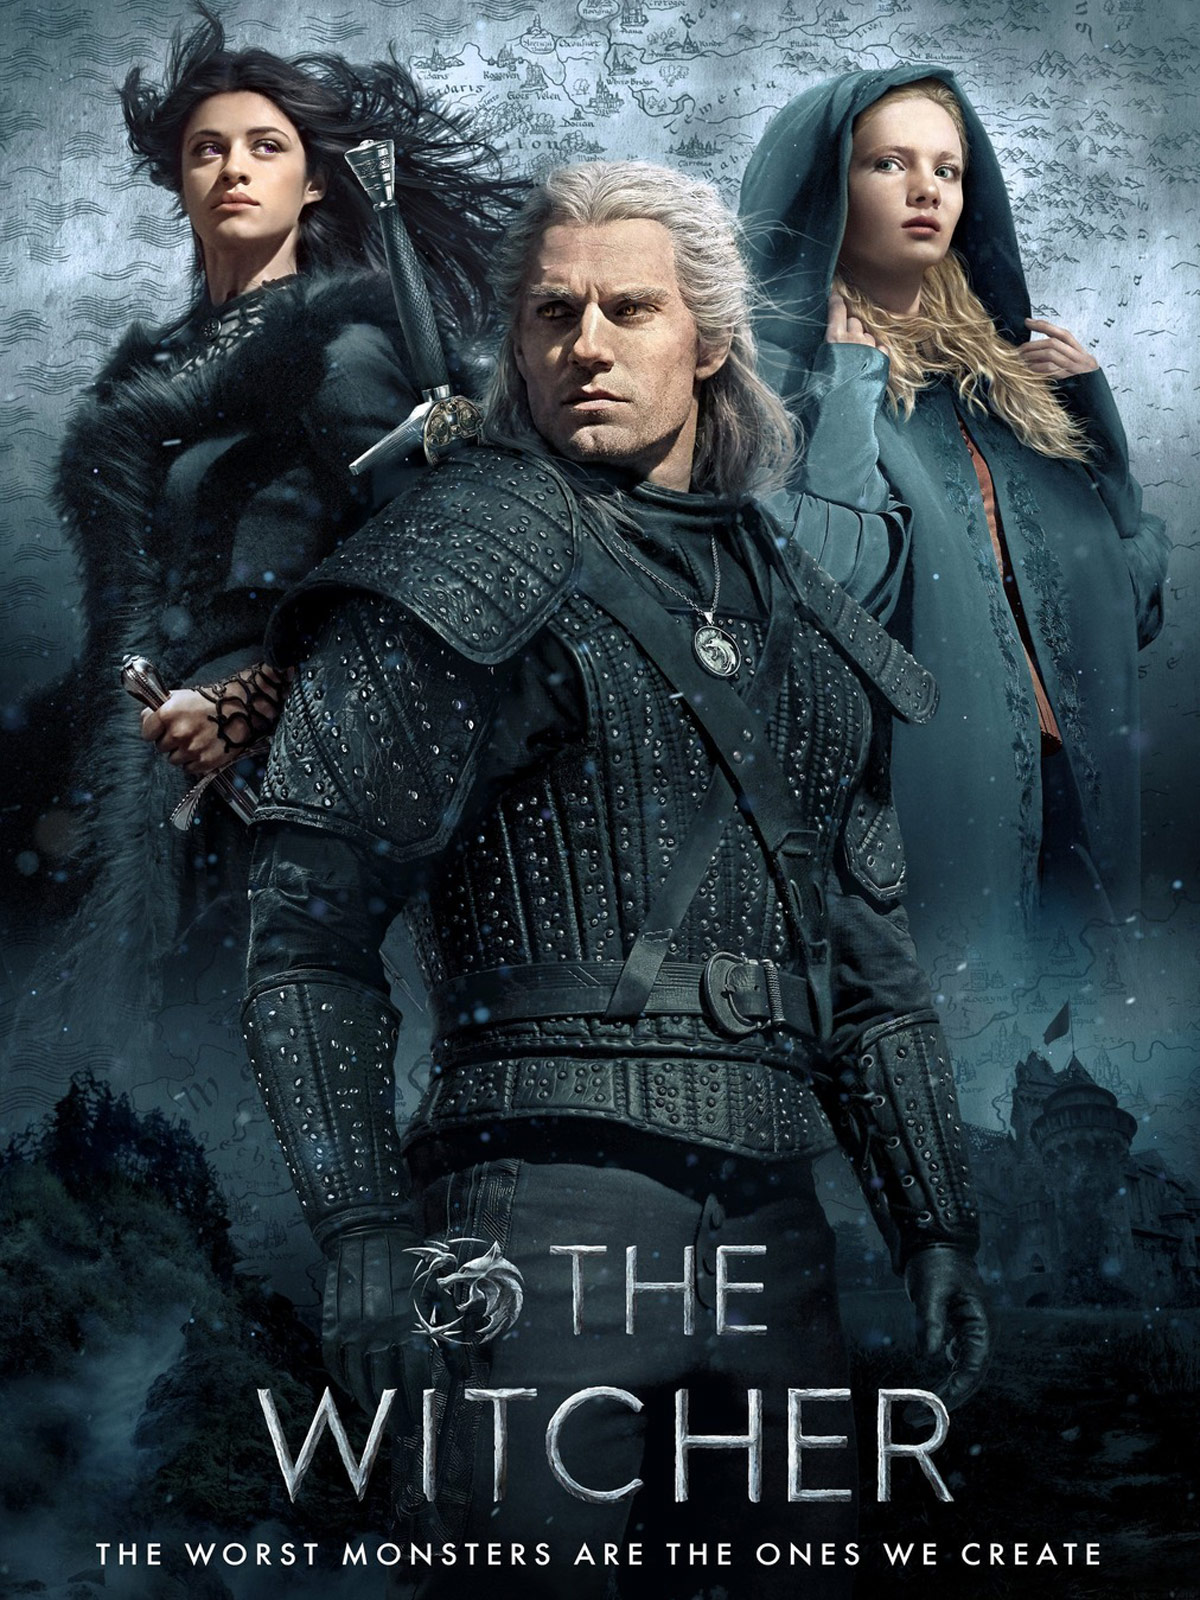 8 - The Witcher